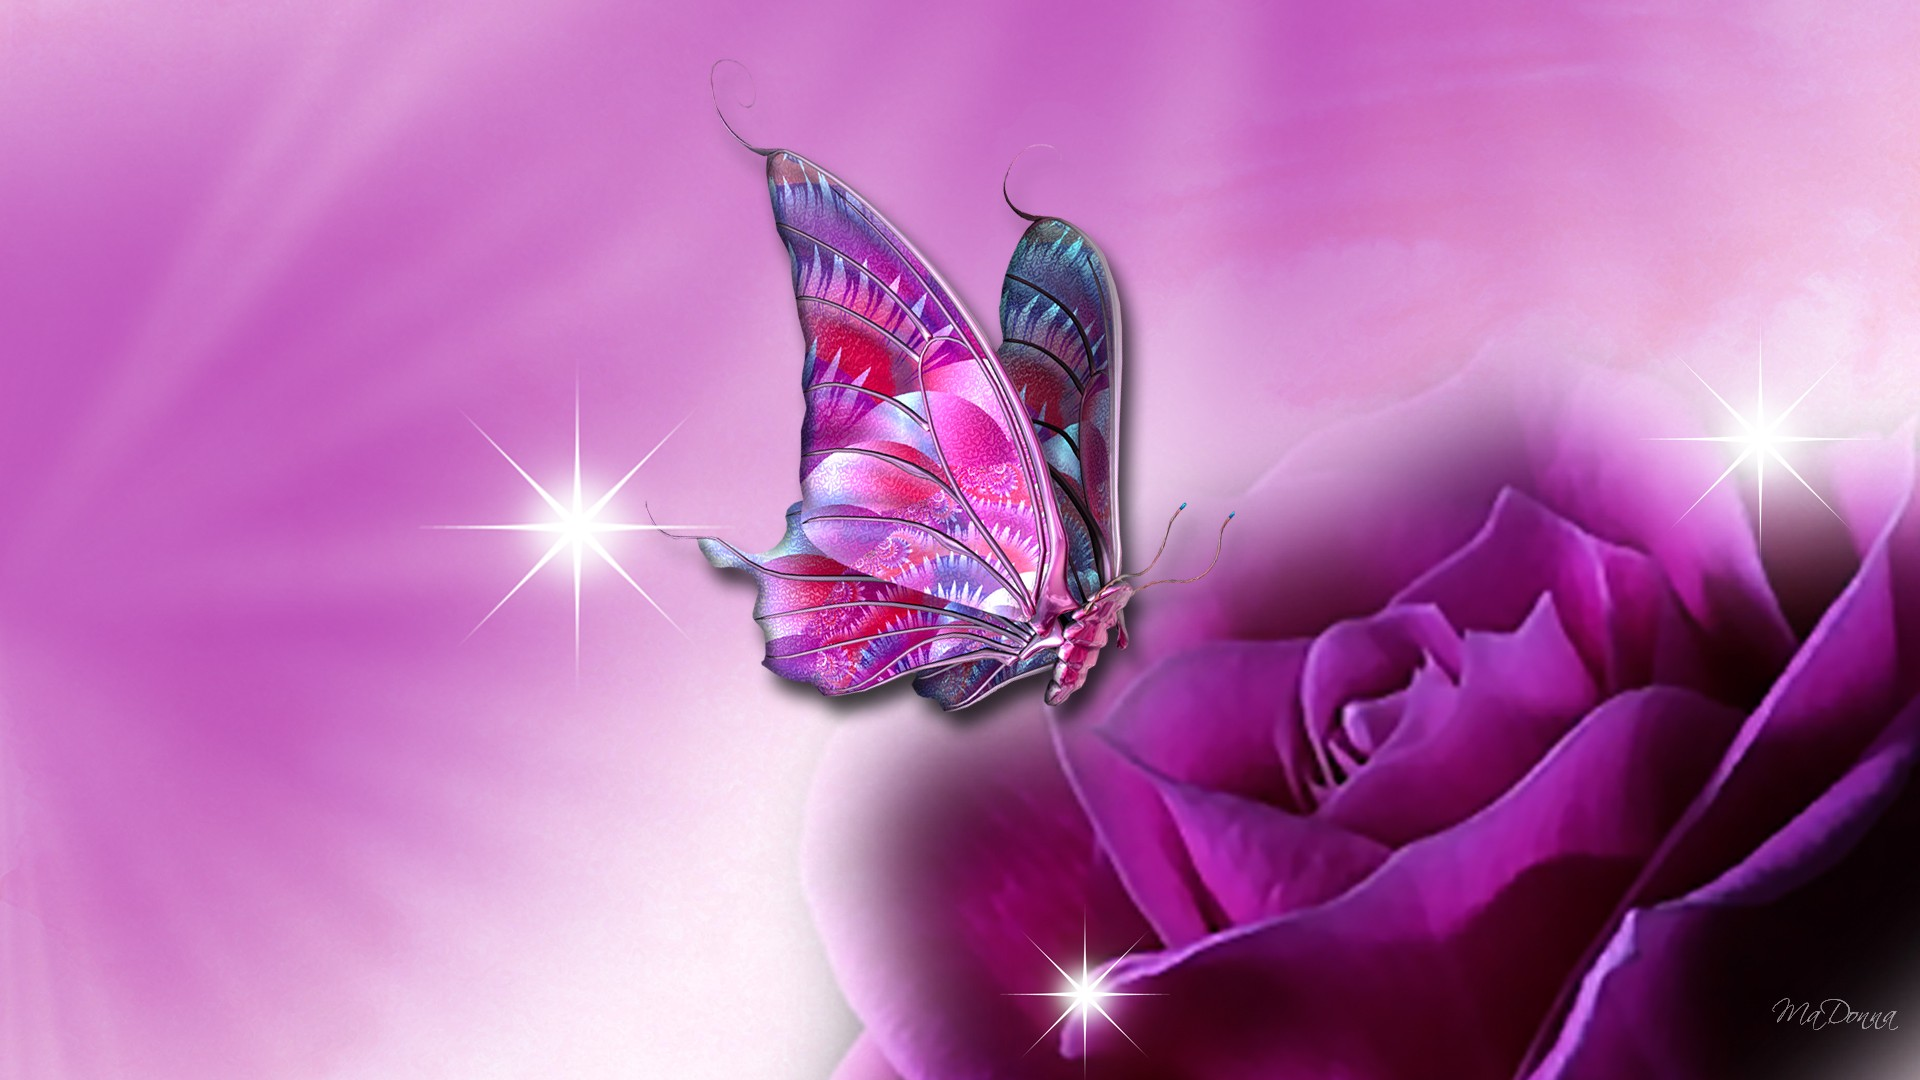 Butterfly Wallpapers for Laptop 1920x1080